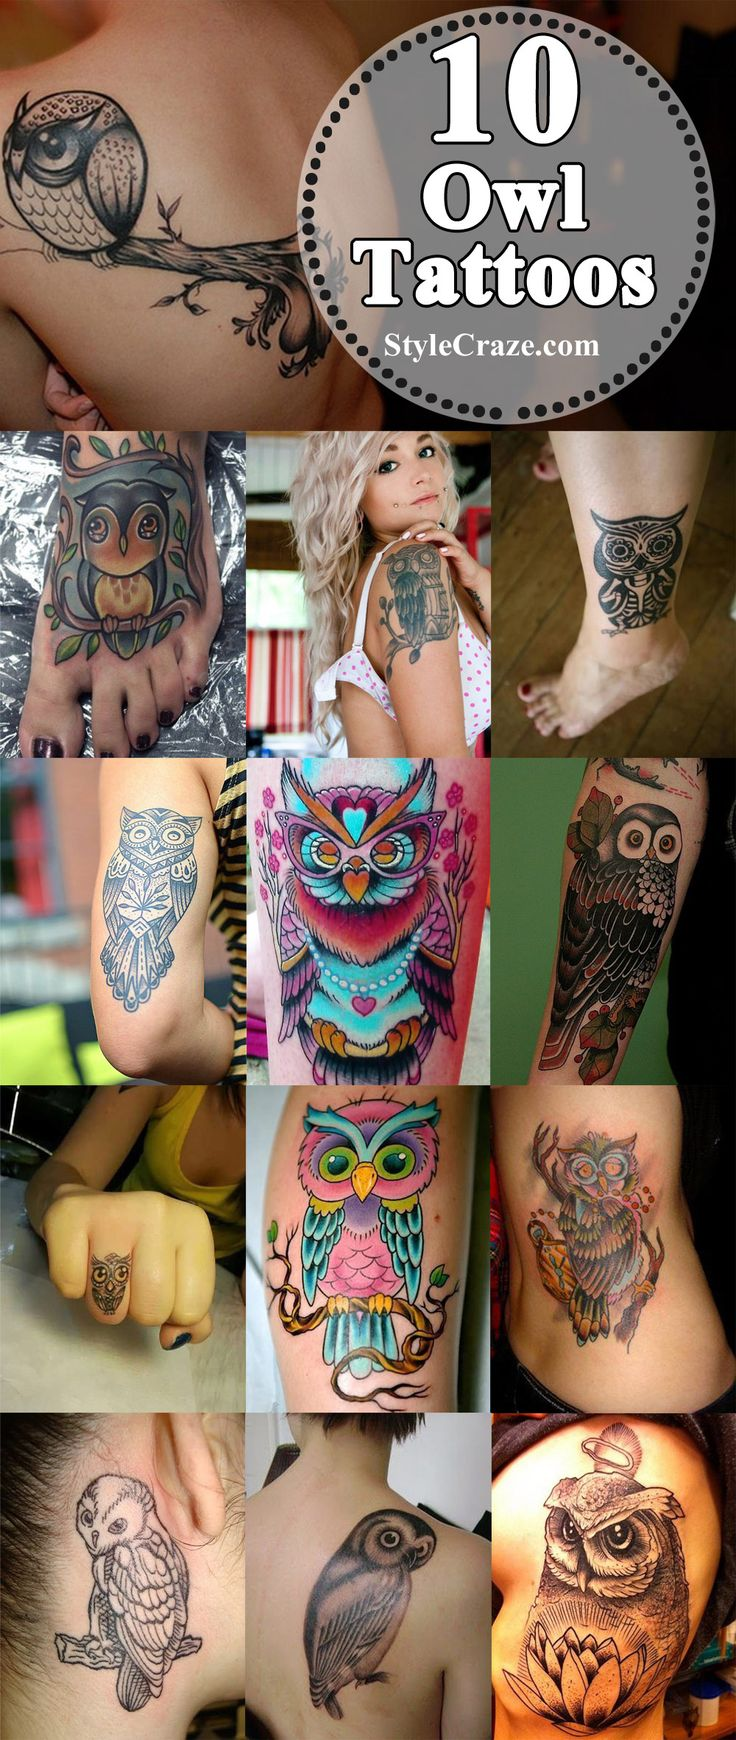 Owl Tattoo Designs : Let us have a glimpse at the top 10 owl tattoos for an idea. Hope you will surely try to have one of them inked over your skin.